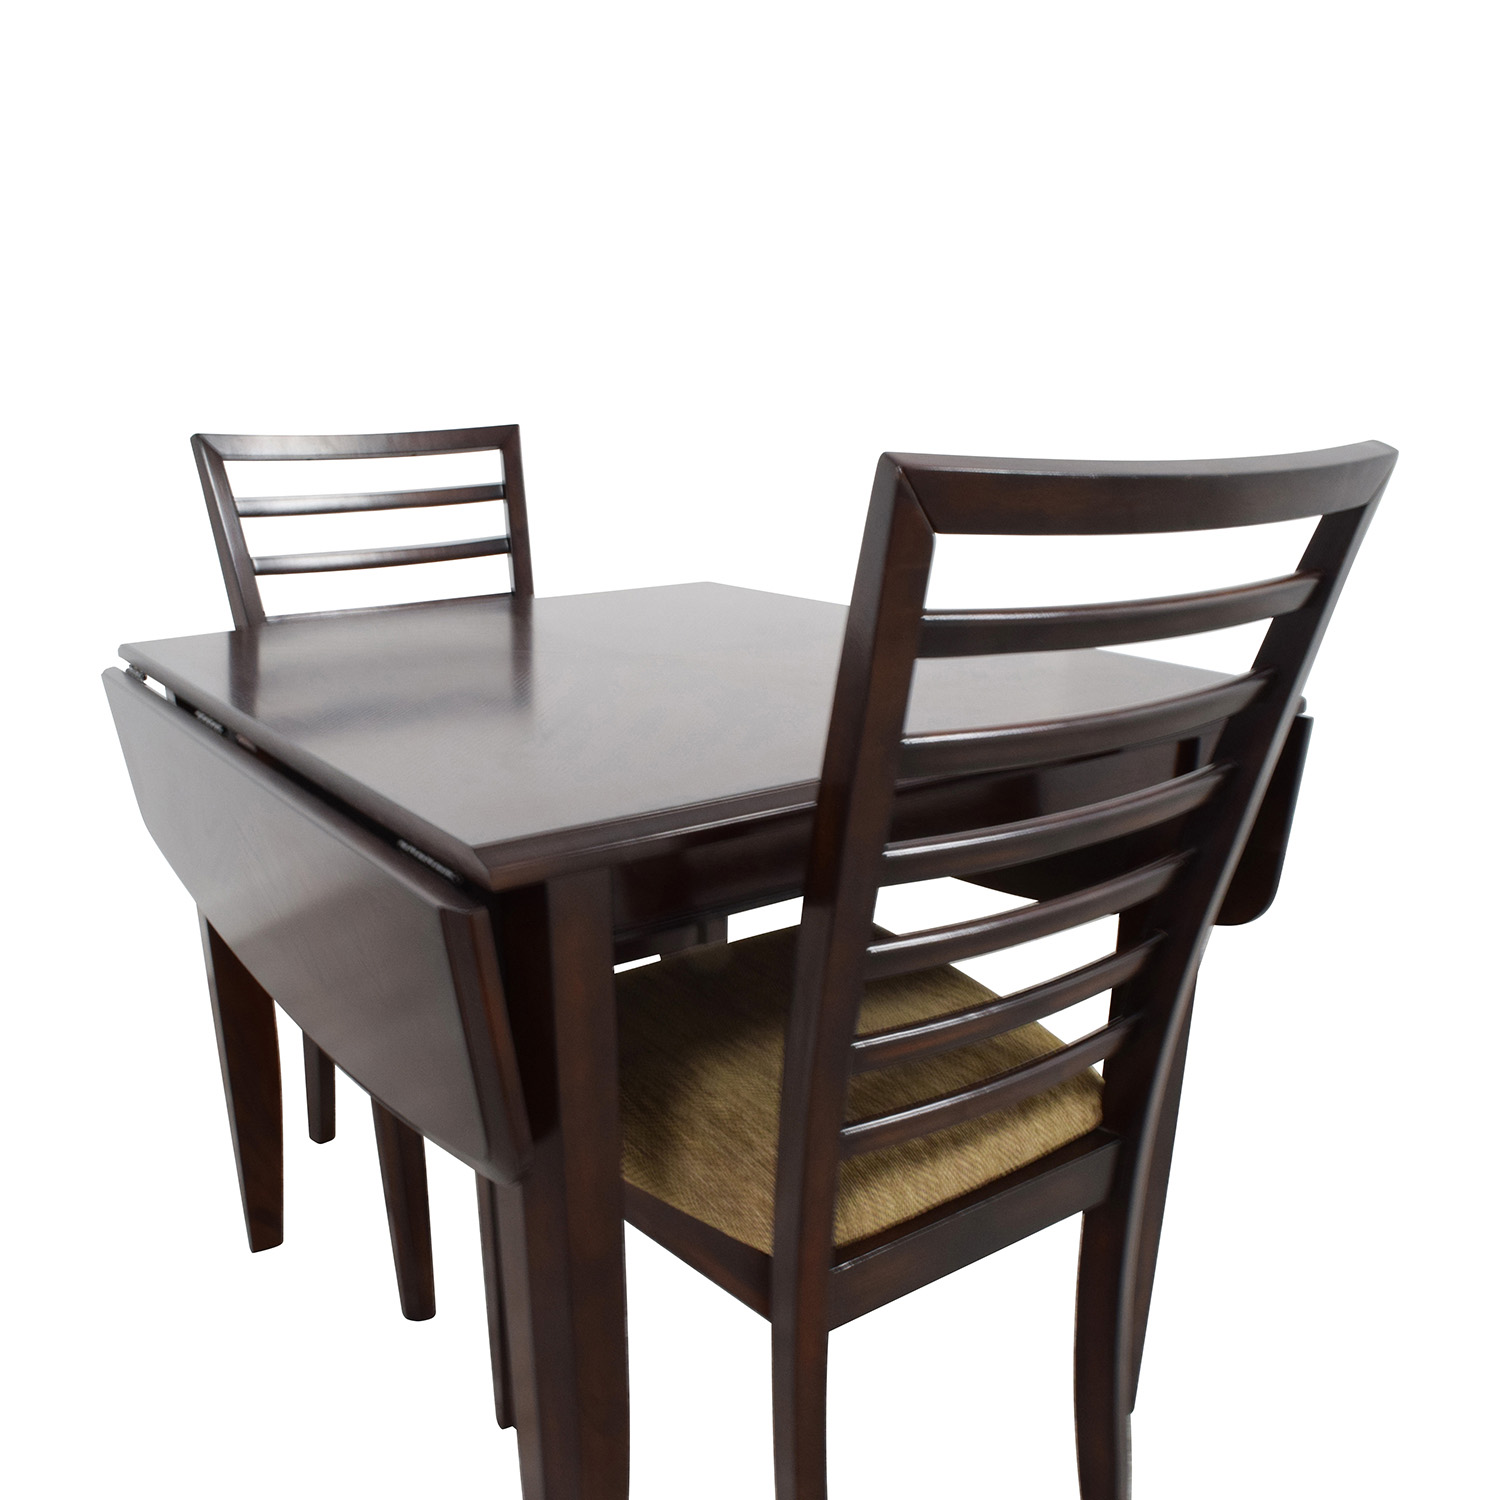 Raymour And Flanigan Dining Chairs: Raymour & Flanigan Raymour & Flanigan Chace